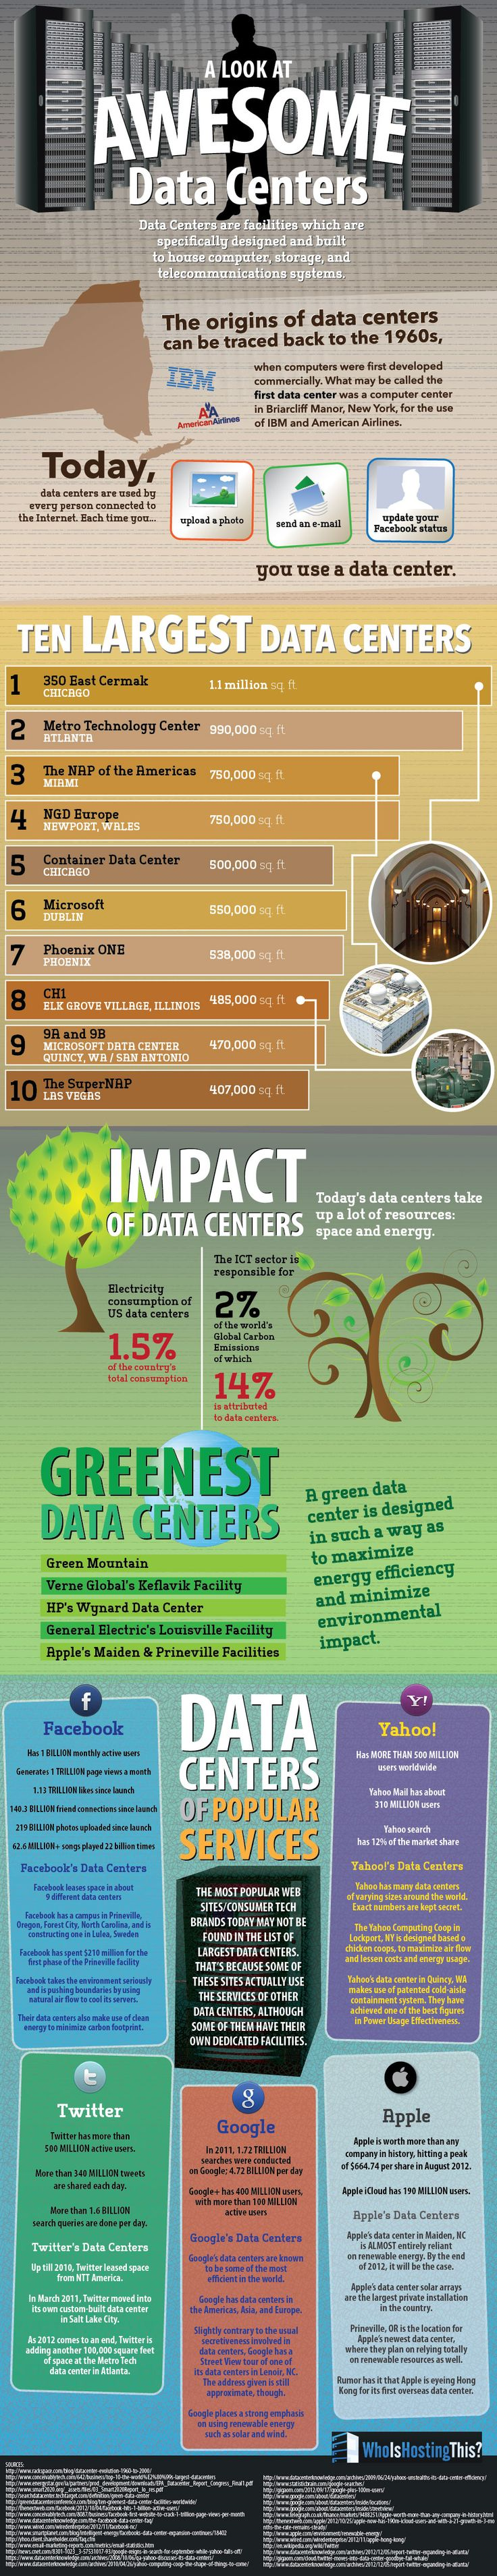 Data center insights galore! From the world's largest data centers to some of the most advanced features data centers hold to date. Stellar inforgraphic.